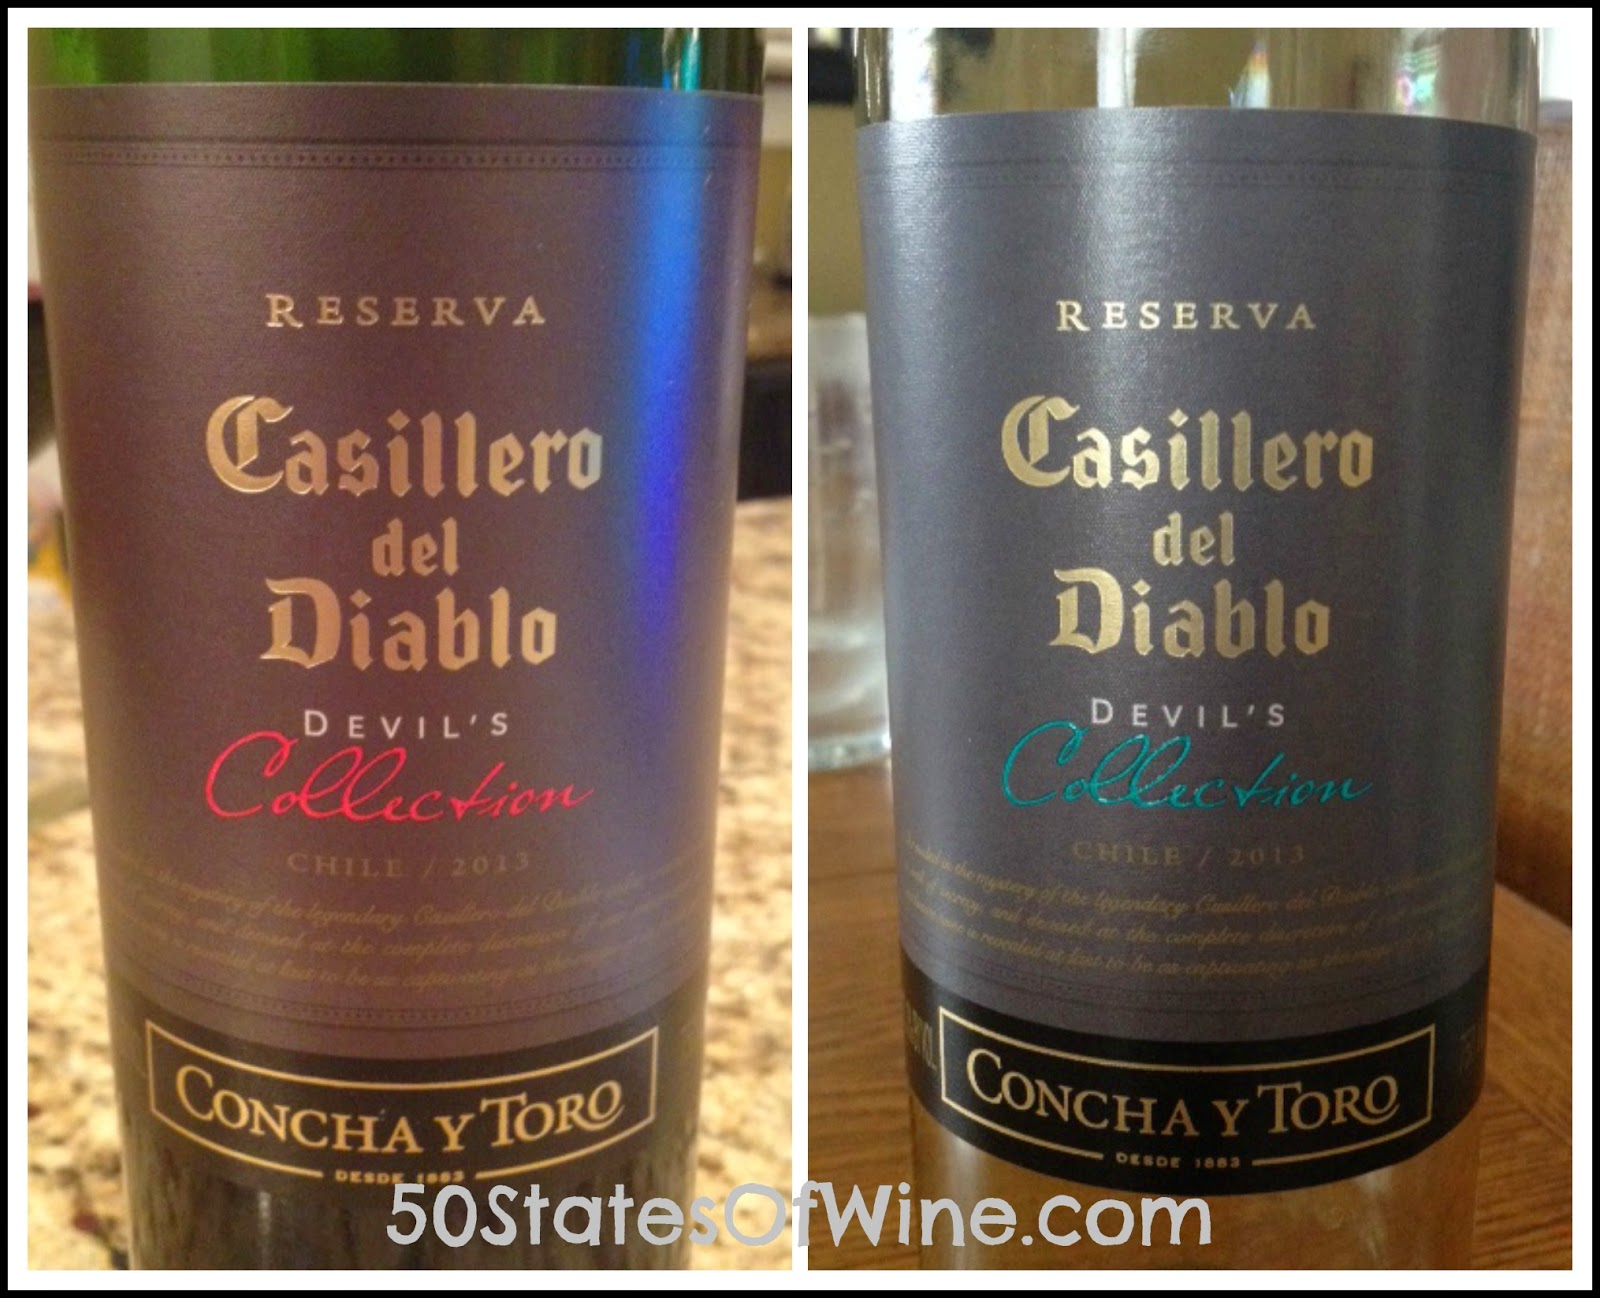 Casillero del Diablo Devil's Collection 2013